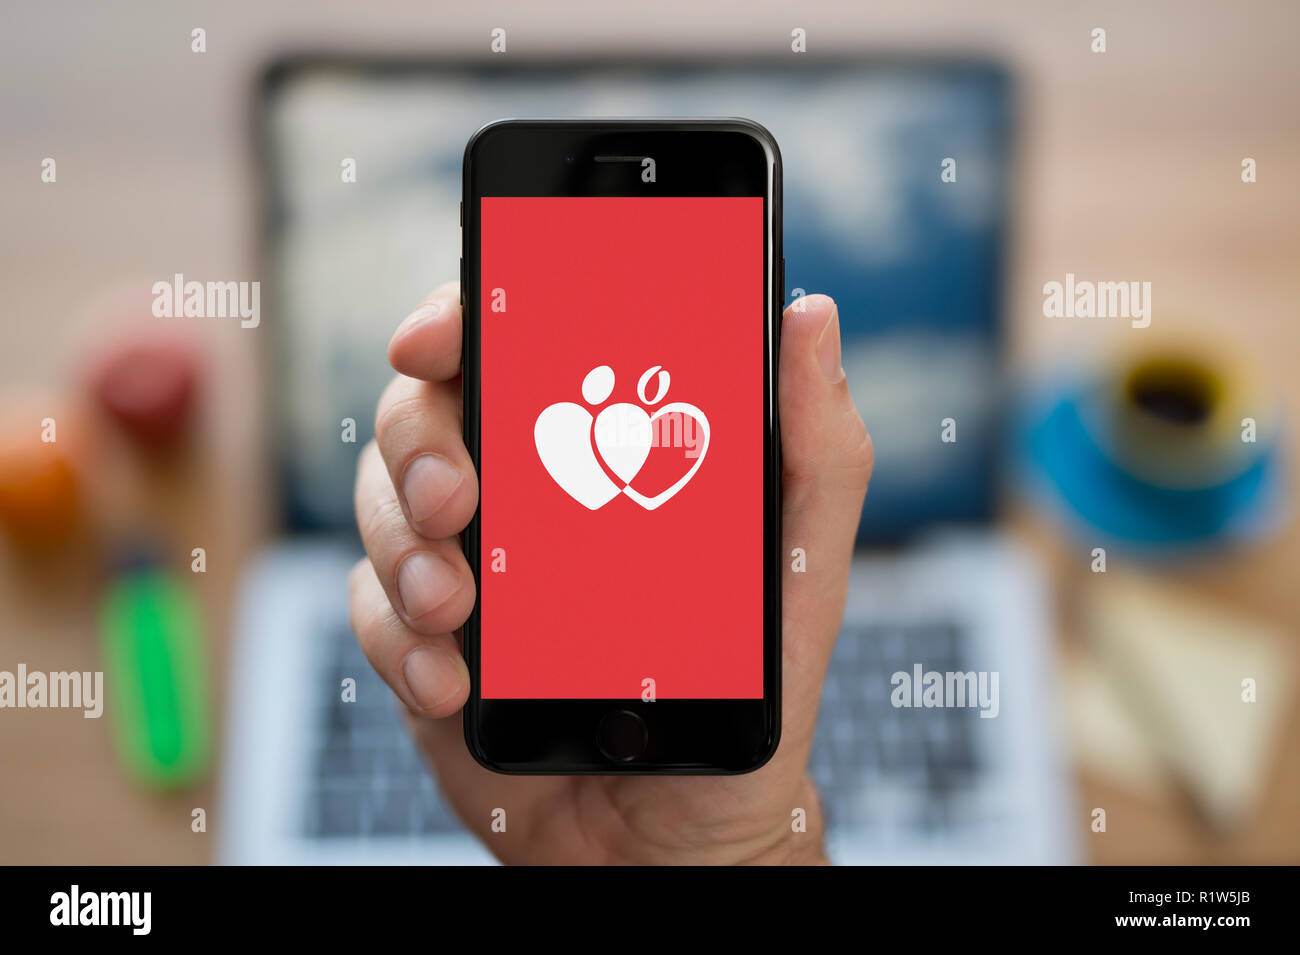 A man looks at his iPhone which displays the Give Blood logo, while sat at his computer desk (Editorial use only). - Stock Image